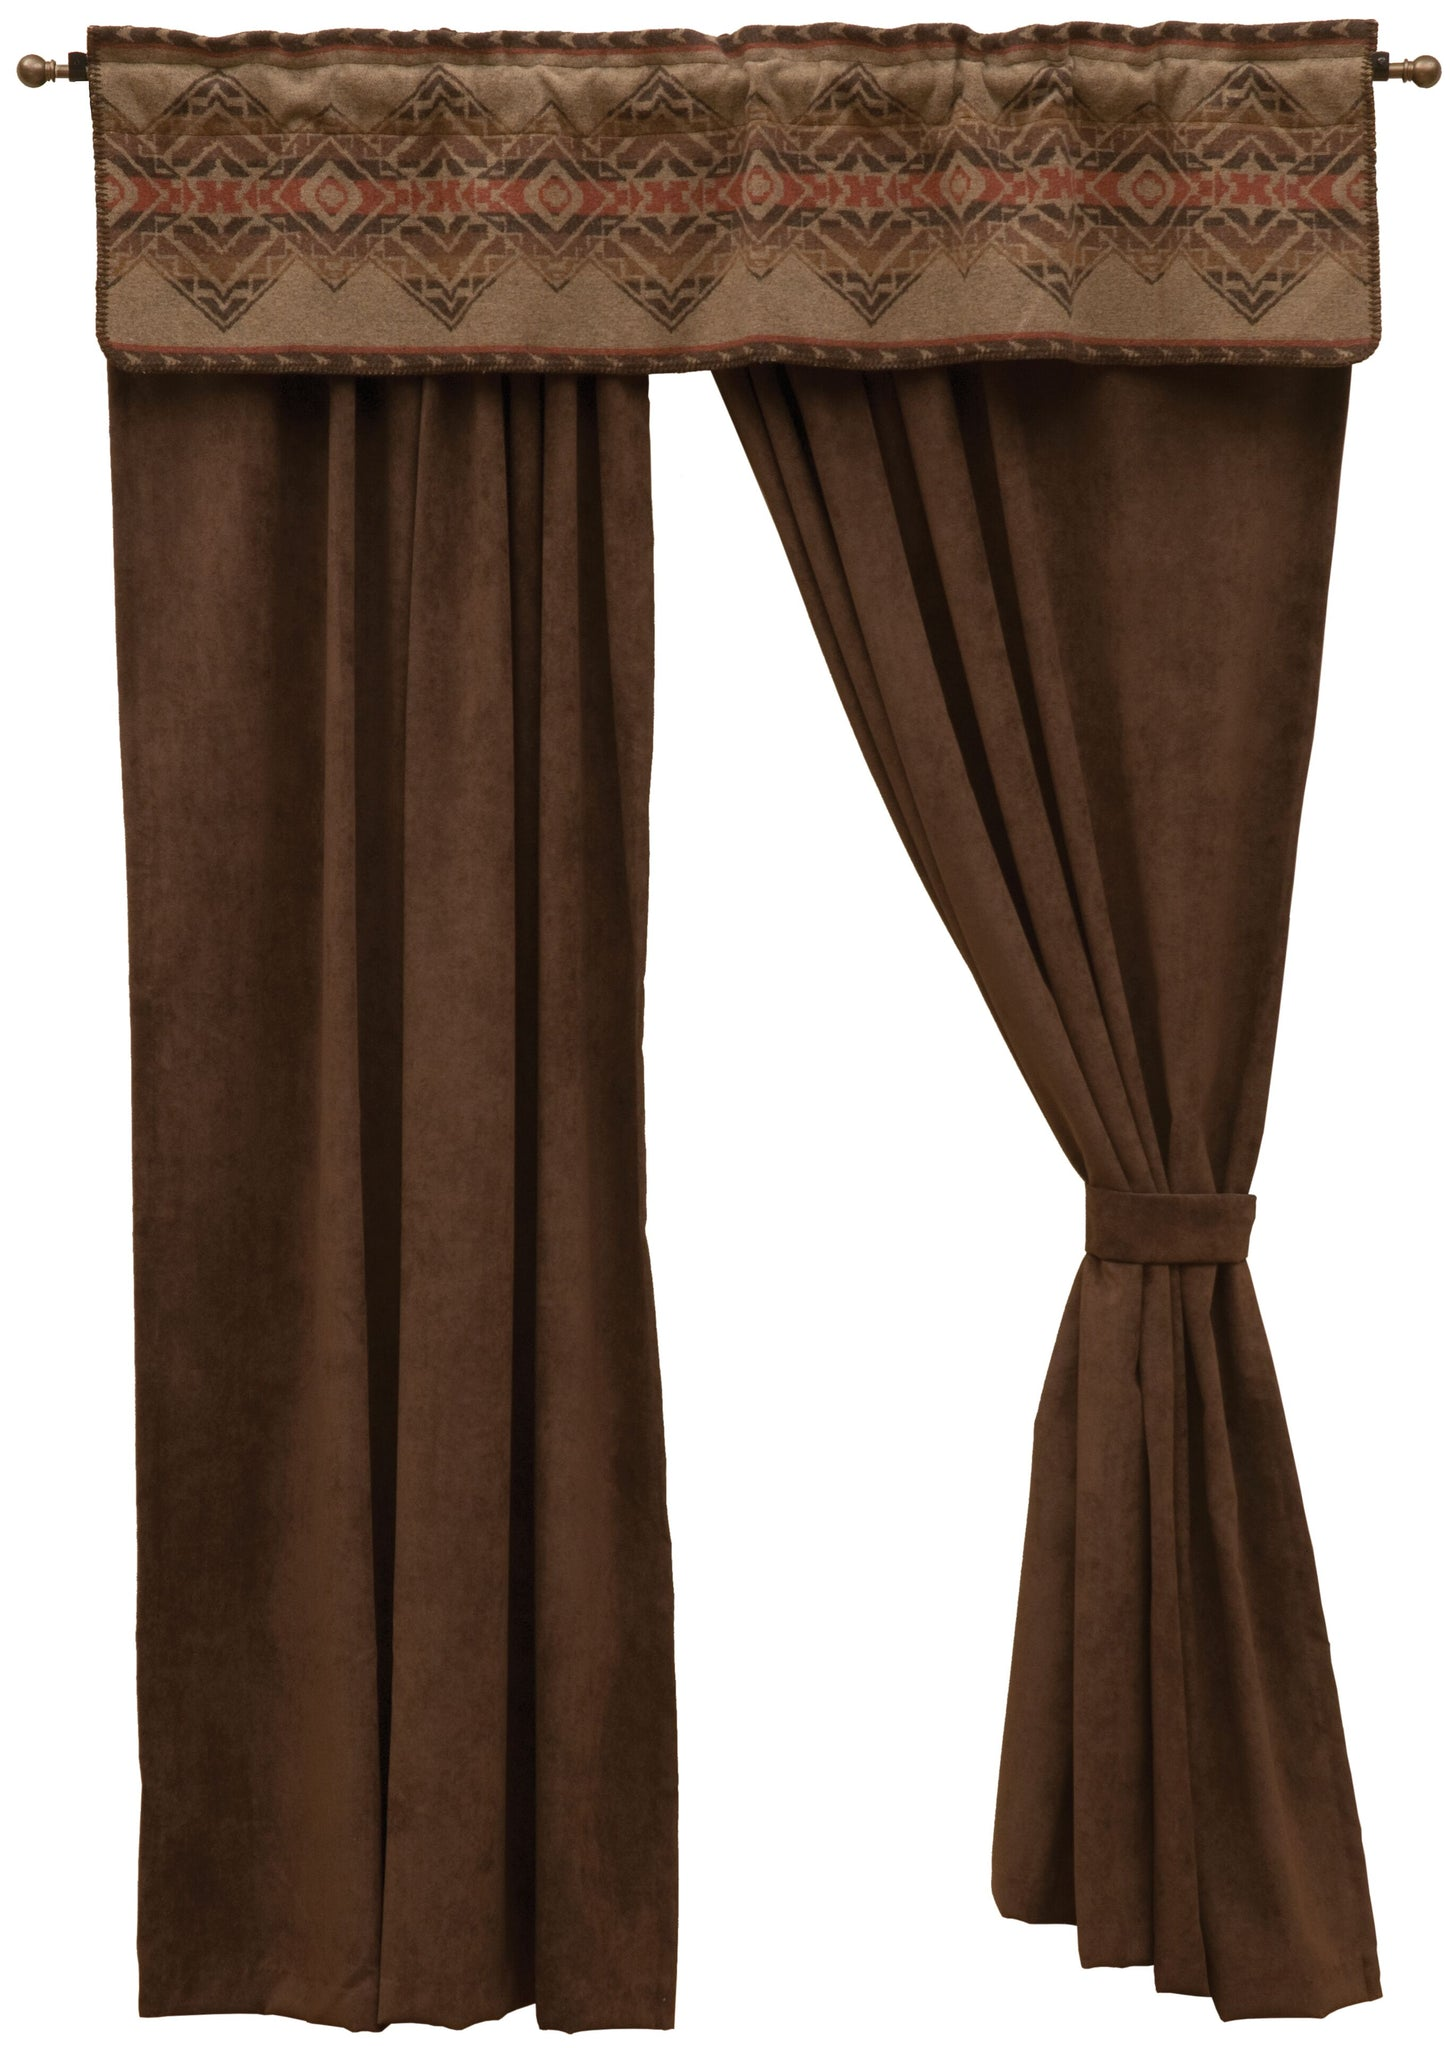 Bison Ridge Drape Sets Wooded River - unique linens online